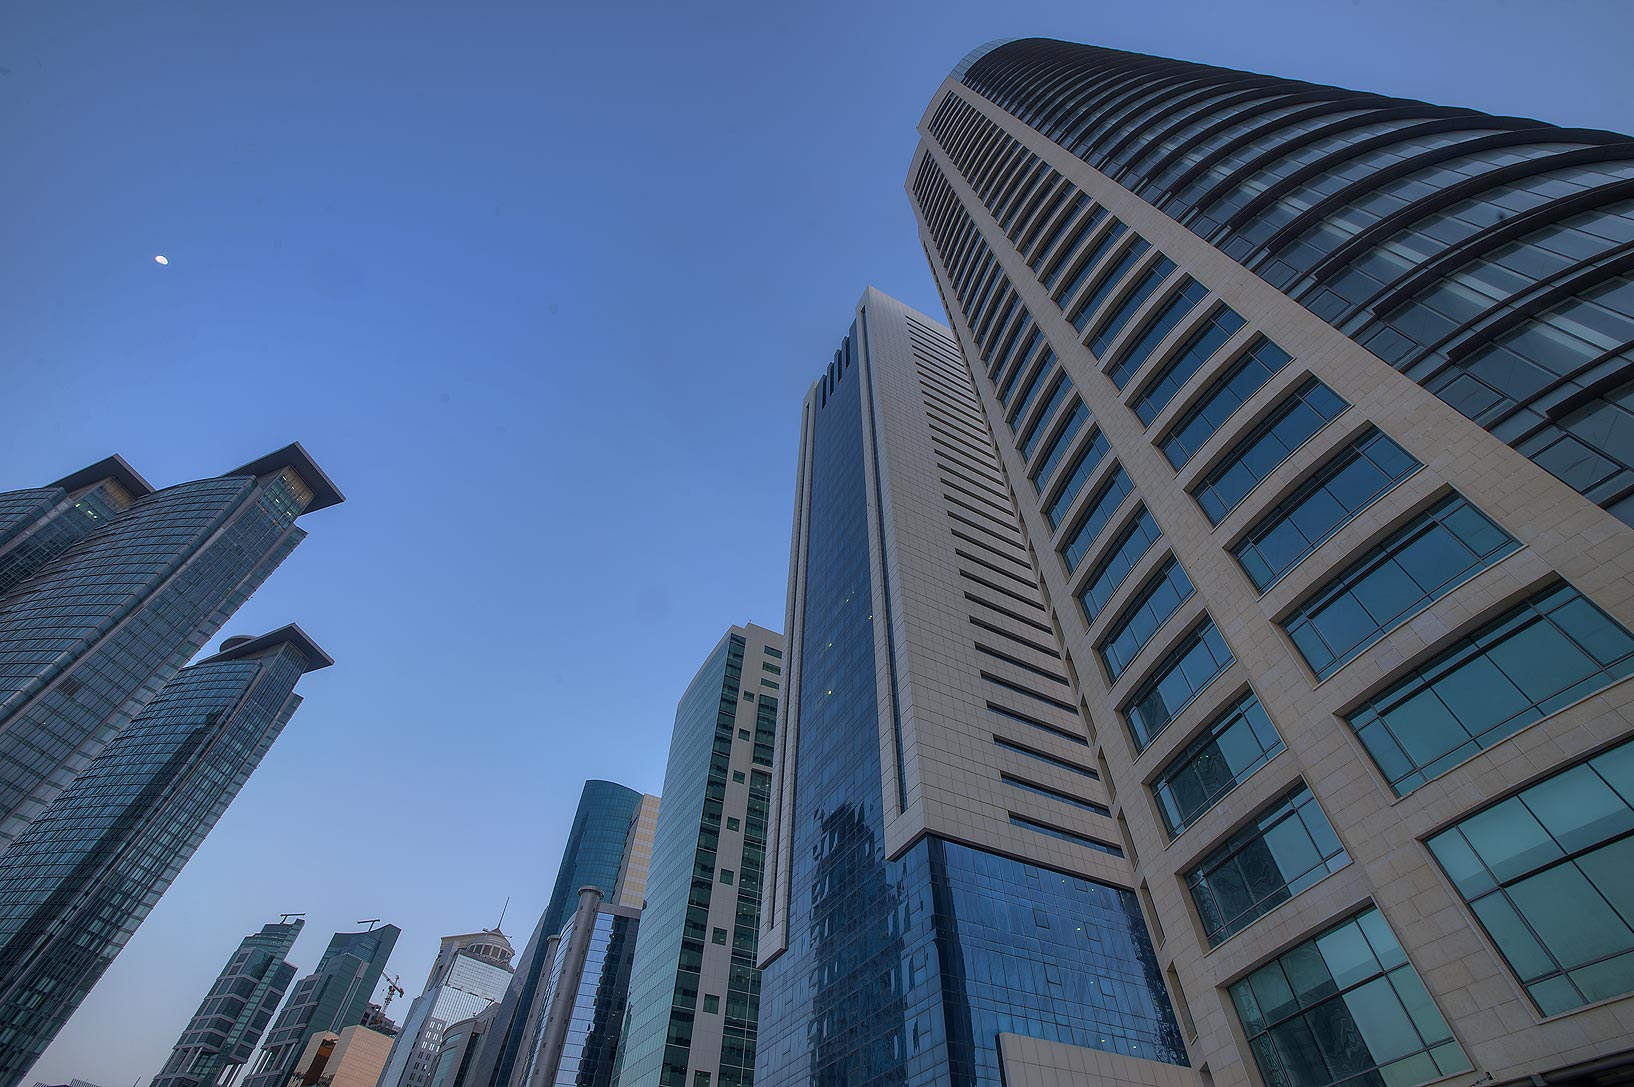 Milaha Tower on Conference Centre St. in West Bay near Al Dafna Roundabout. Doha, Qatar